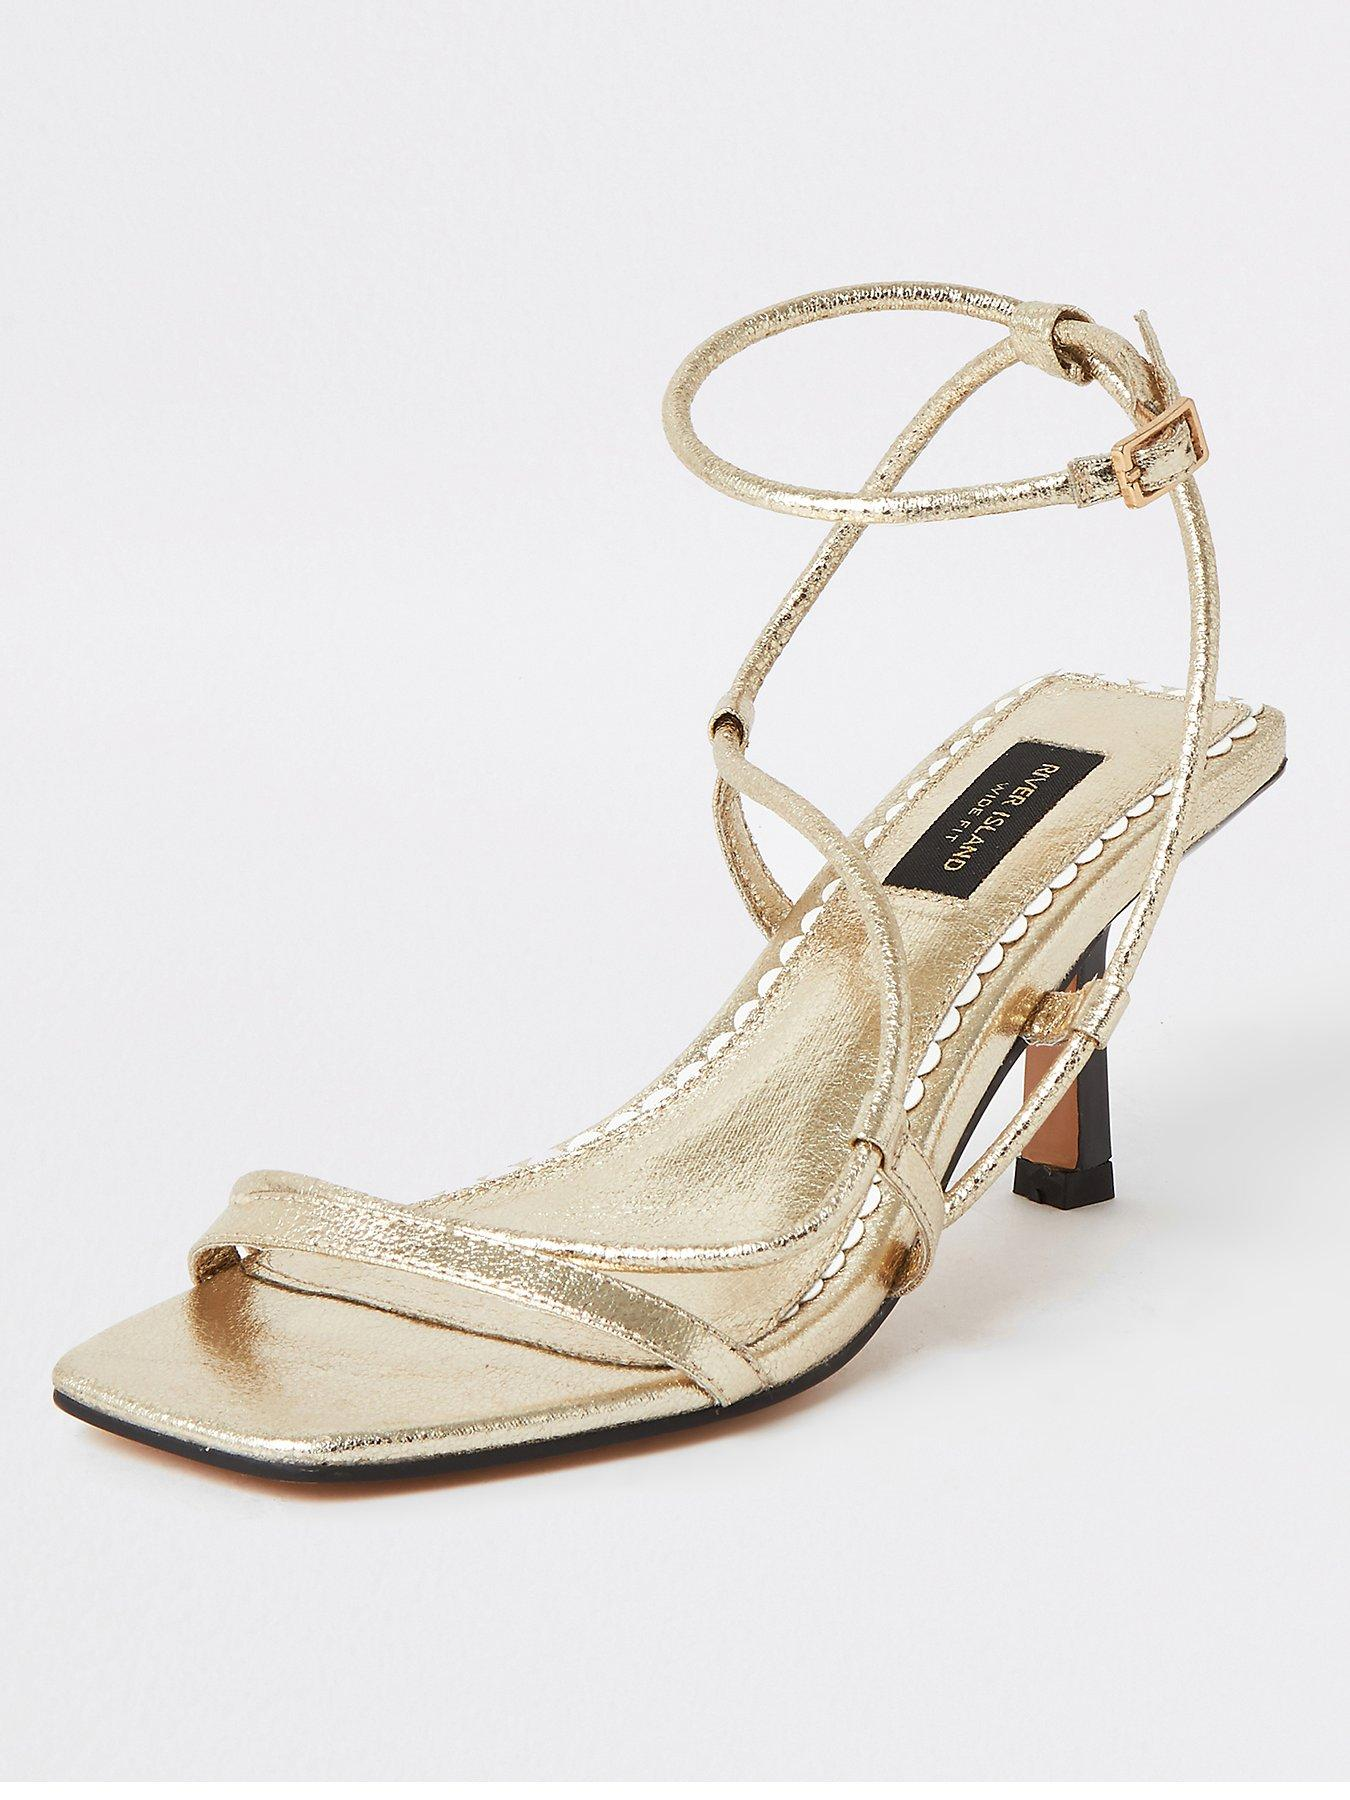 RIVER ISLAND Barely There Platform Party Shoes 4 Strap Peep Toe Leather 6 39 £79